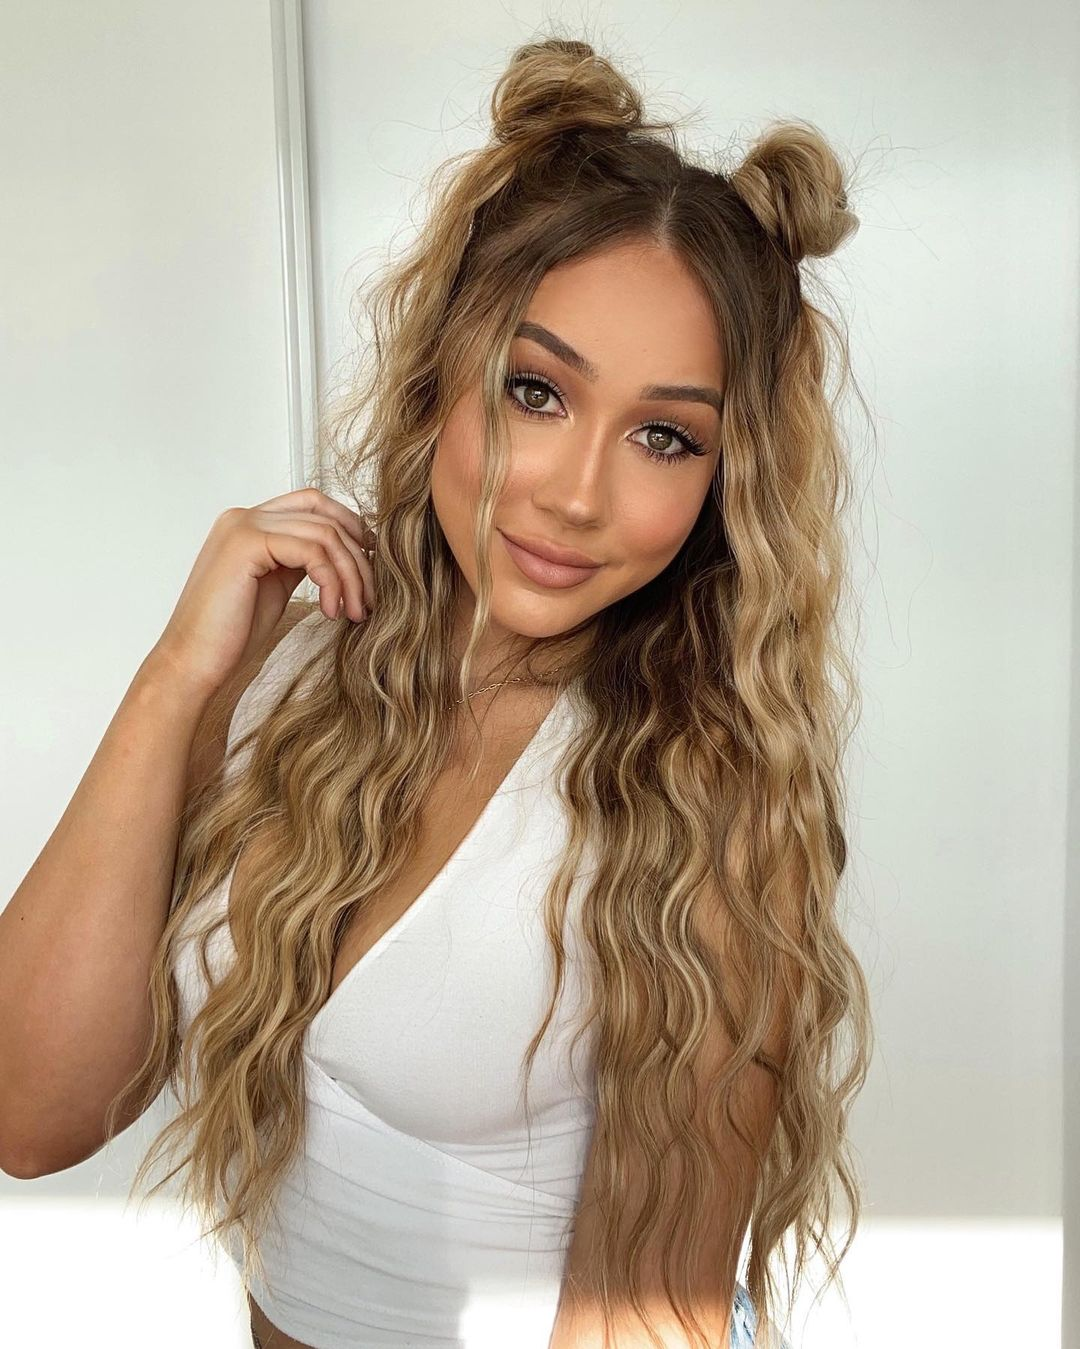 Long Hair with Half-Up Pigtail Buns